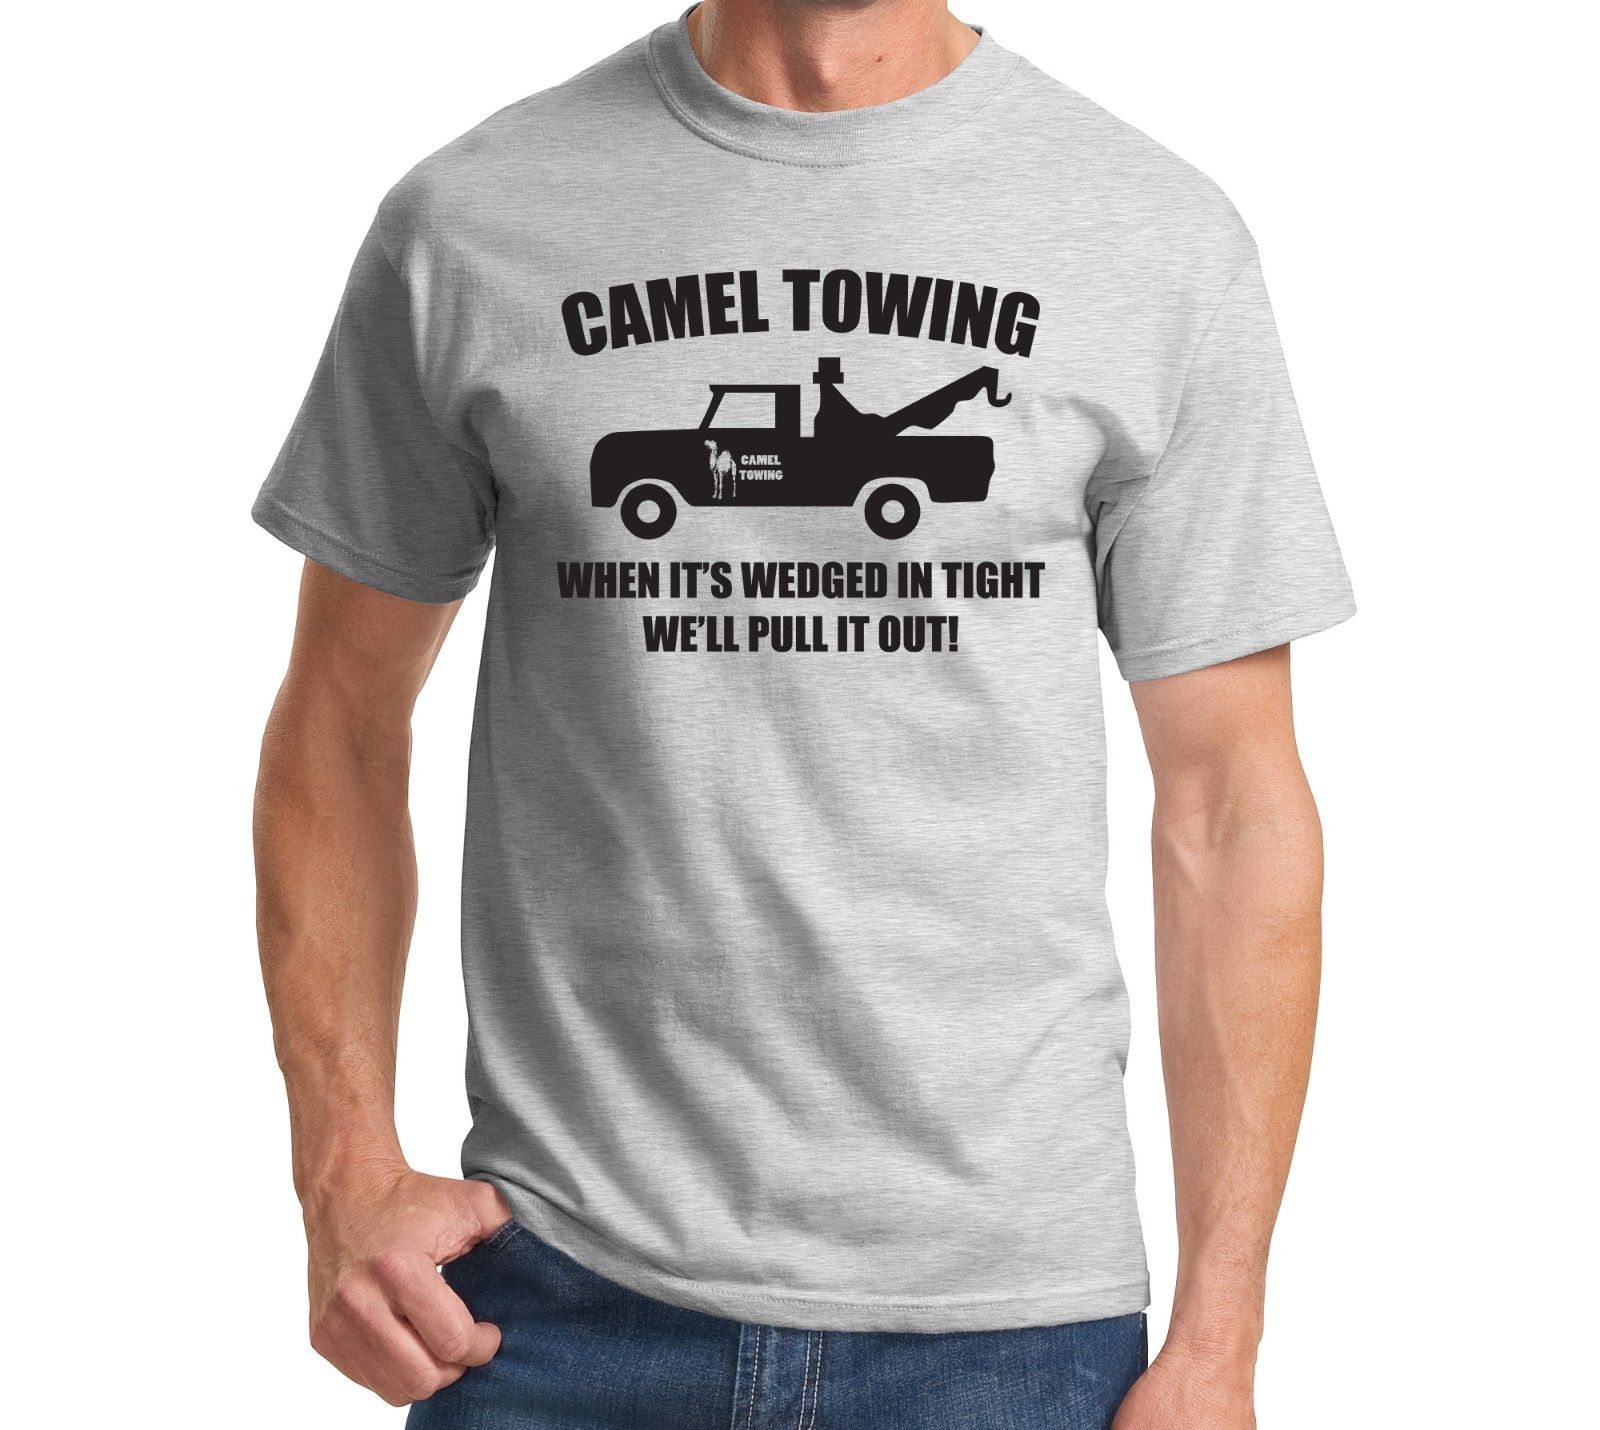 5dbe0688 T Shirt Print Men'S Short Camel Towing Funny Adult Humor Rudeow Truck  Unisex O Neck Office Tee-in T-Shirts from Men's Clothing on Aliexpress.com  | Alibaba ...